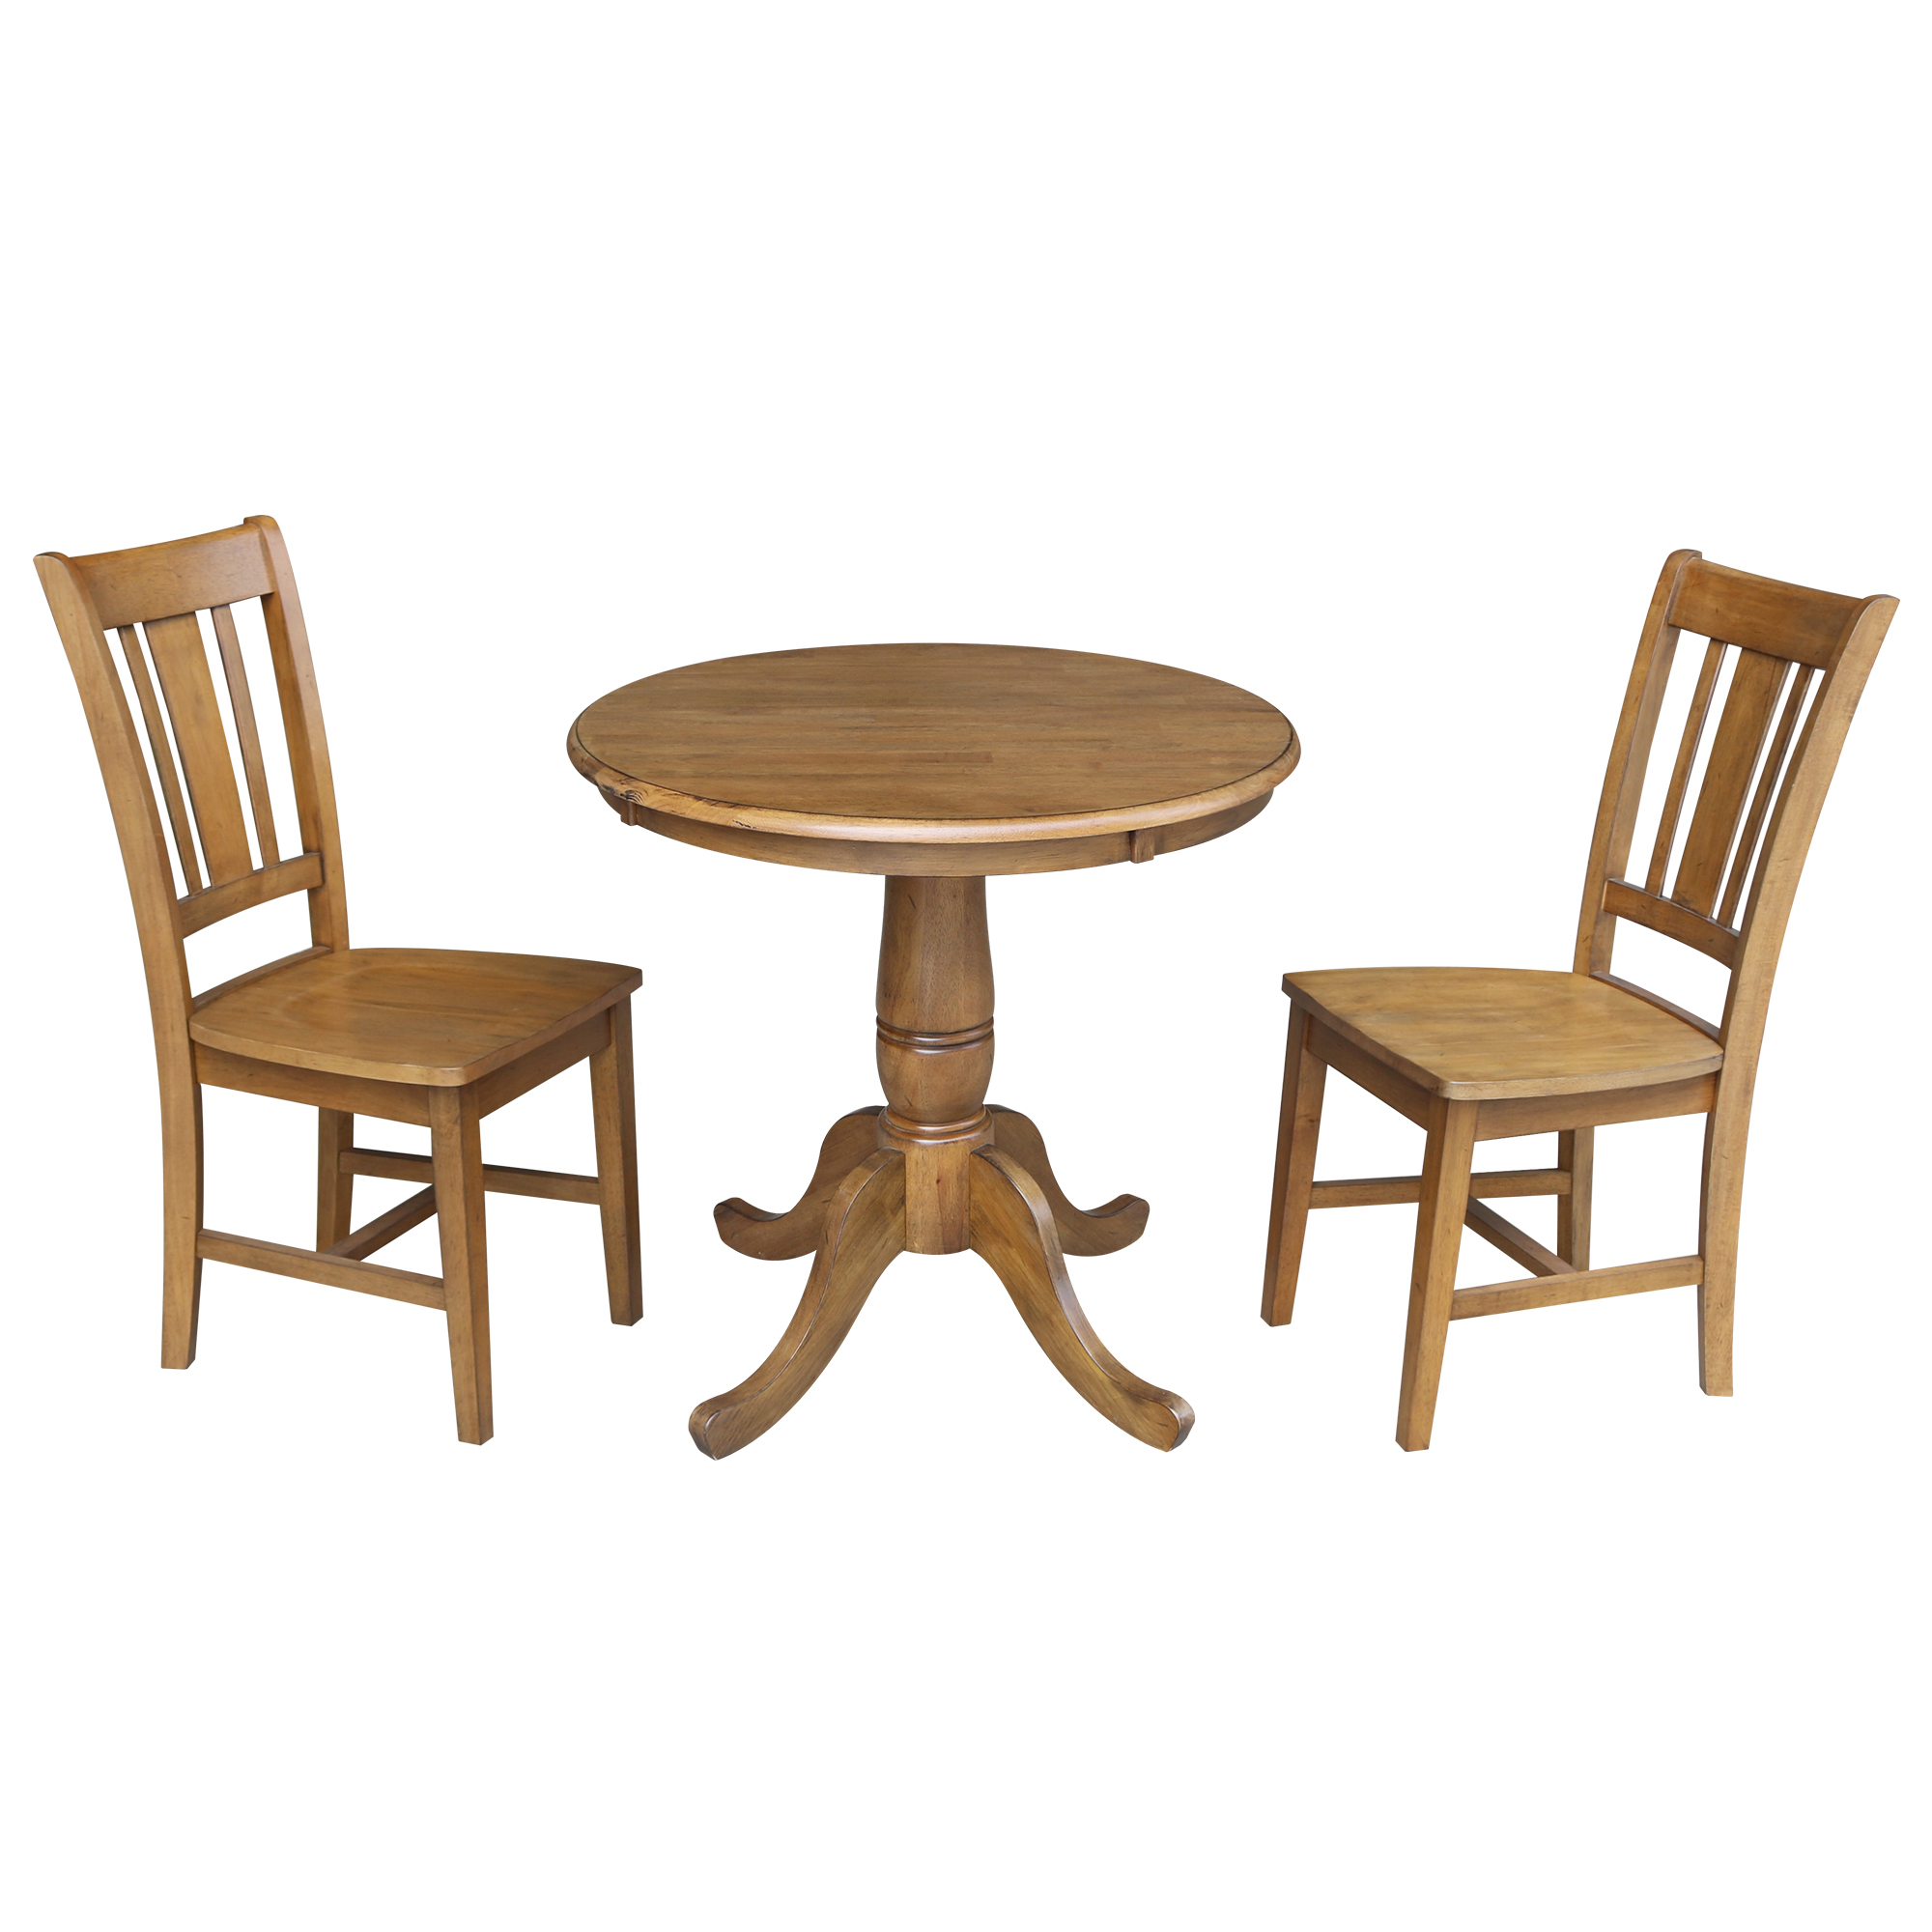 "Round 30"" Top Dining Table with 2 San Remo Chairs - Pecan- 3 Piece Set"